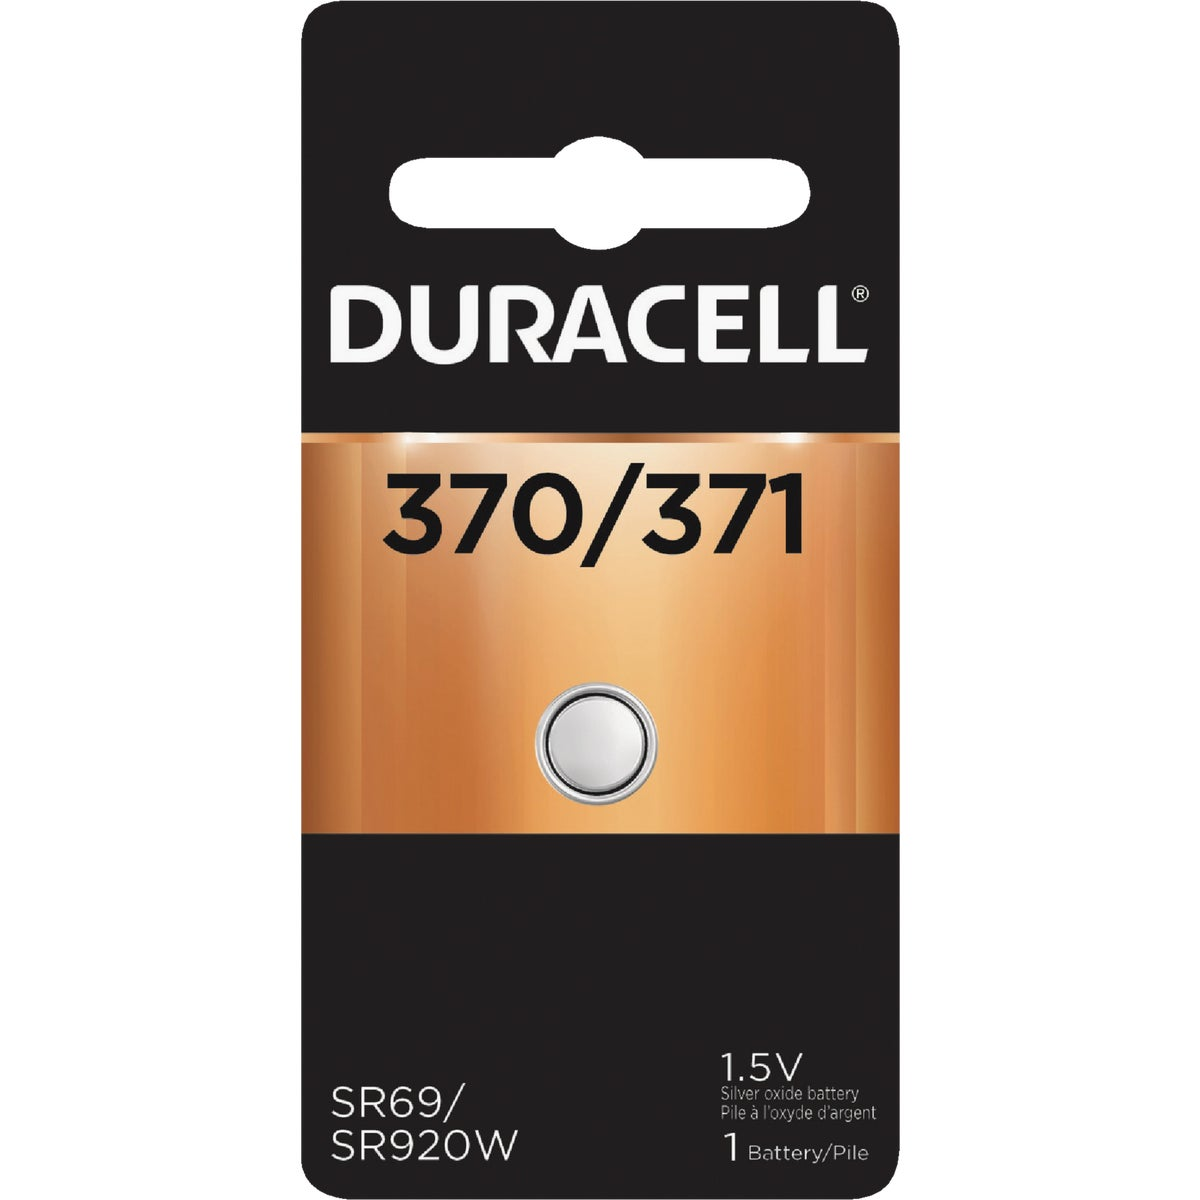 D370/371 1.5V WA BATTERY - 41287 by P & G  Duracell